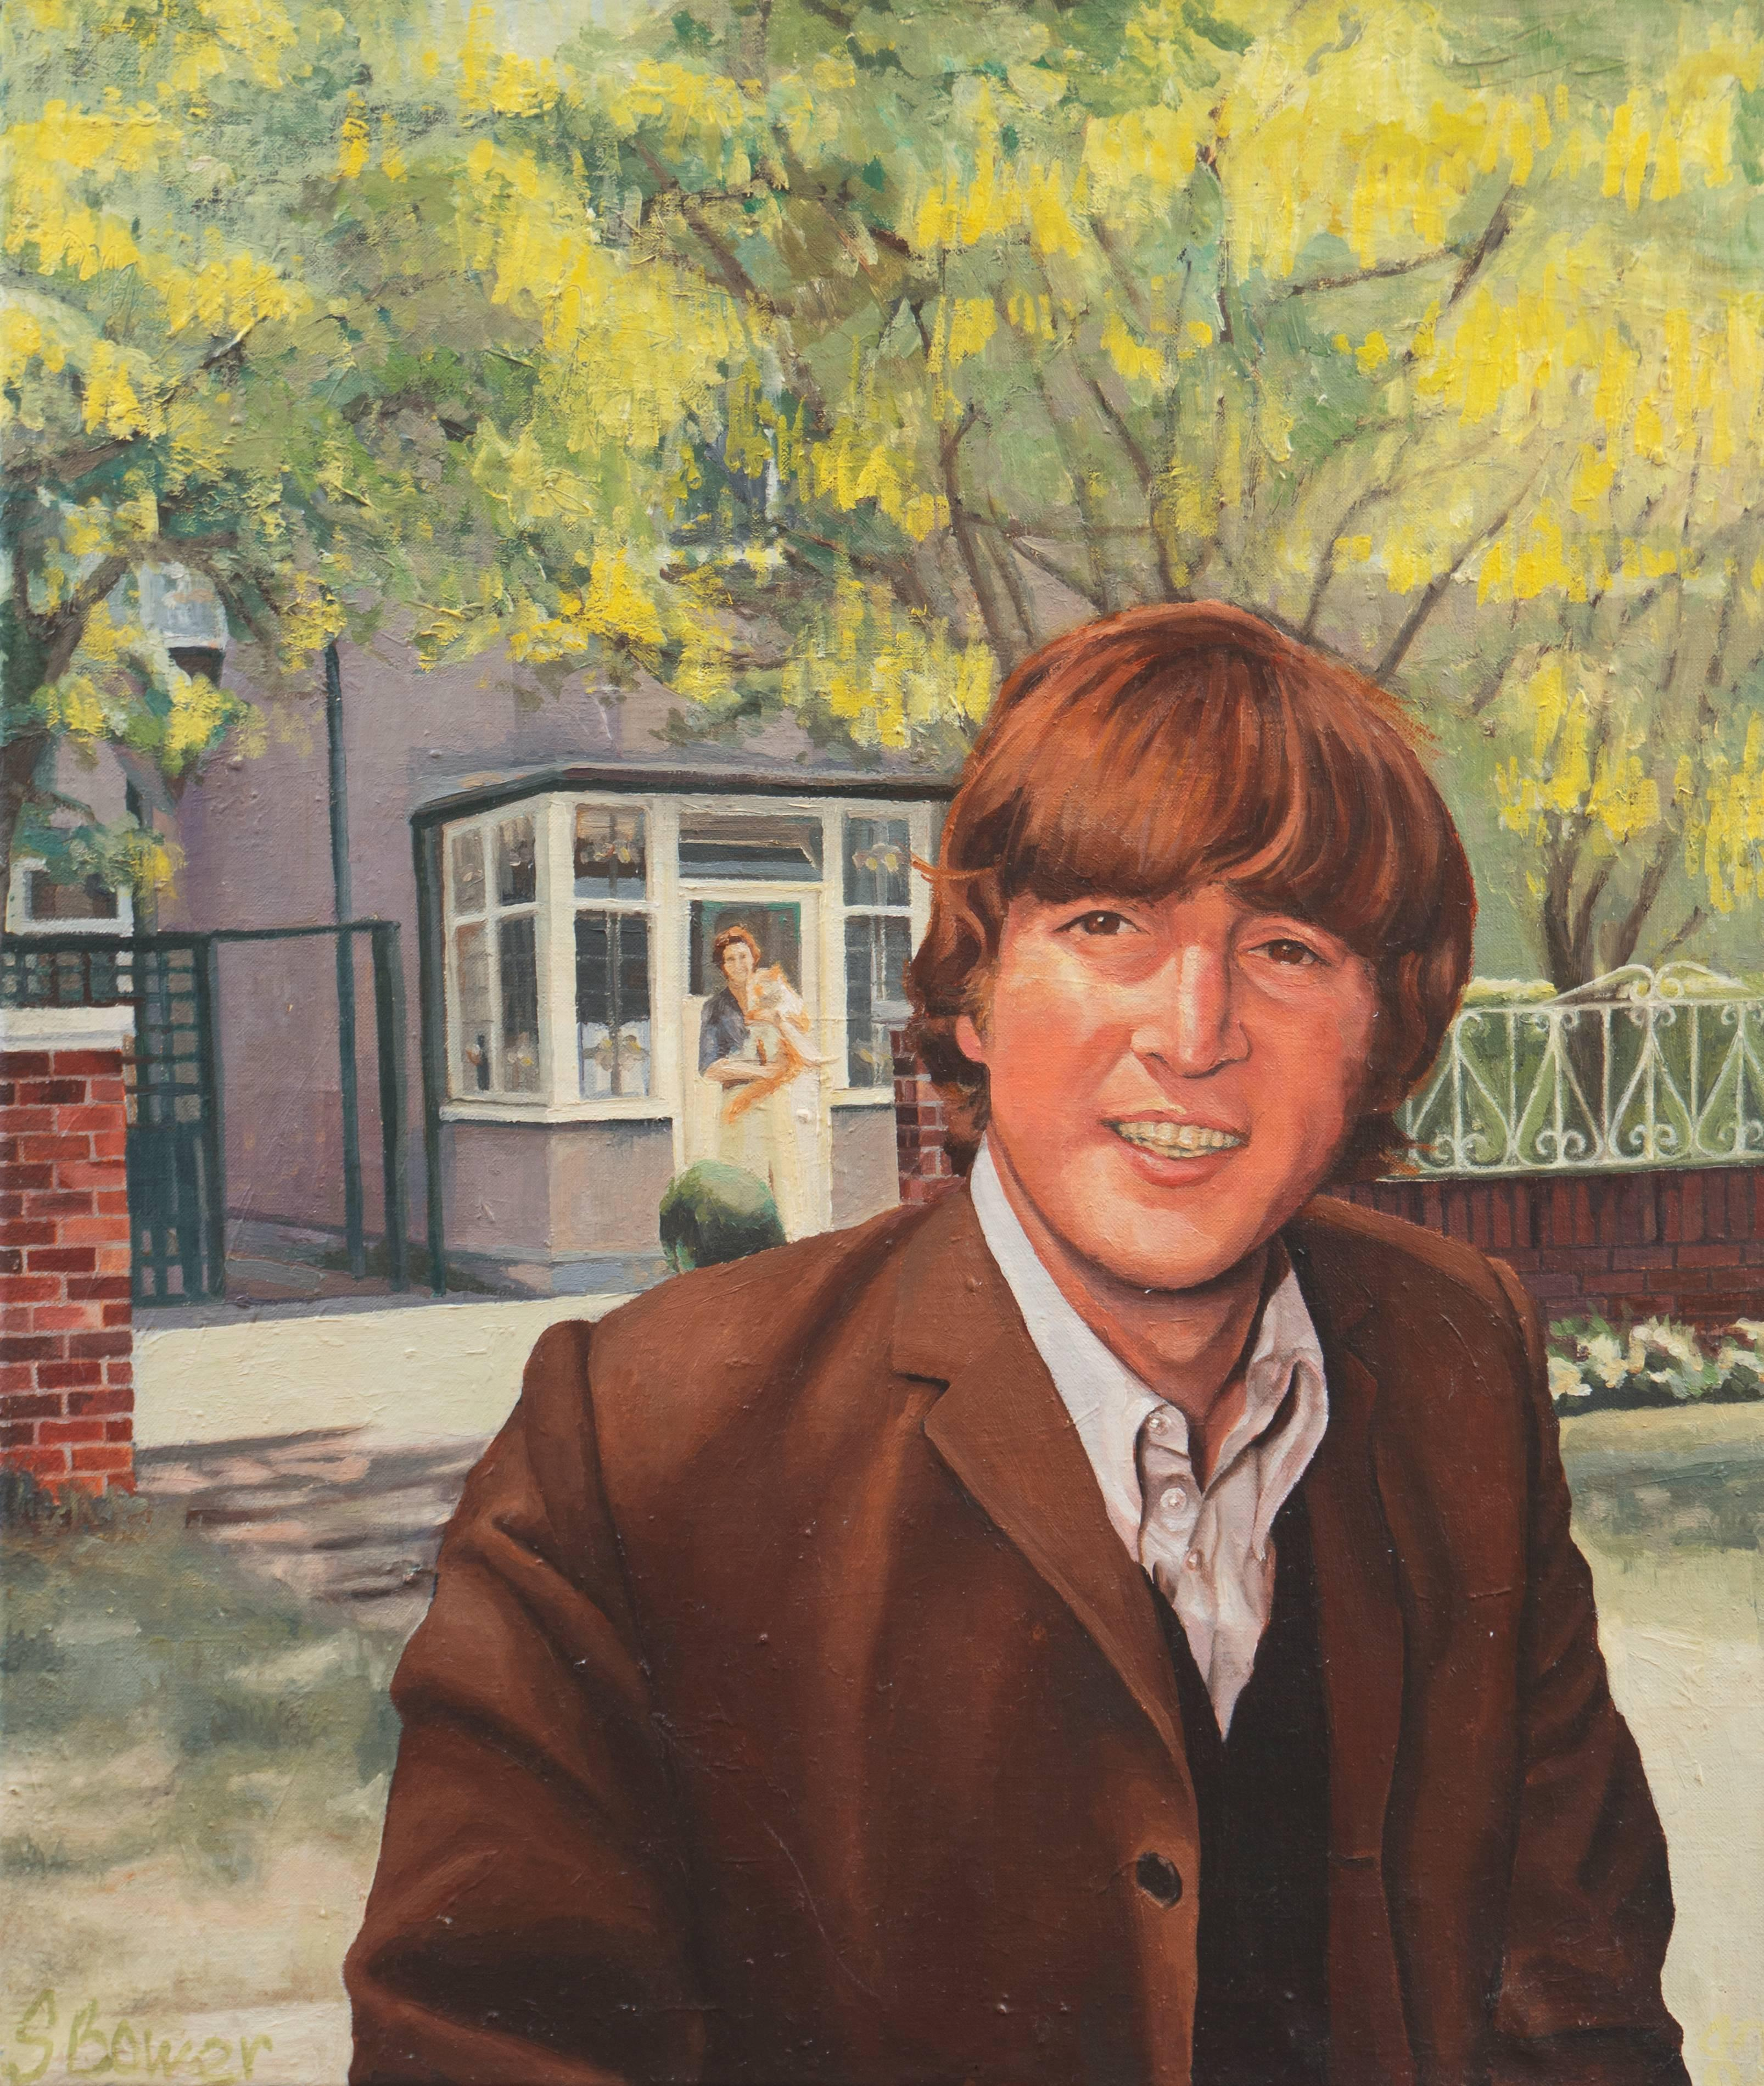 'John and Mimi with Tim', John Lennon, England, Manchester College of Art